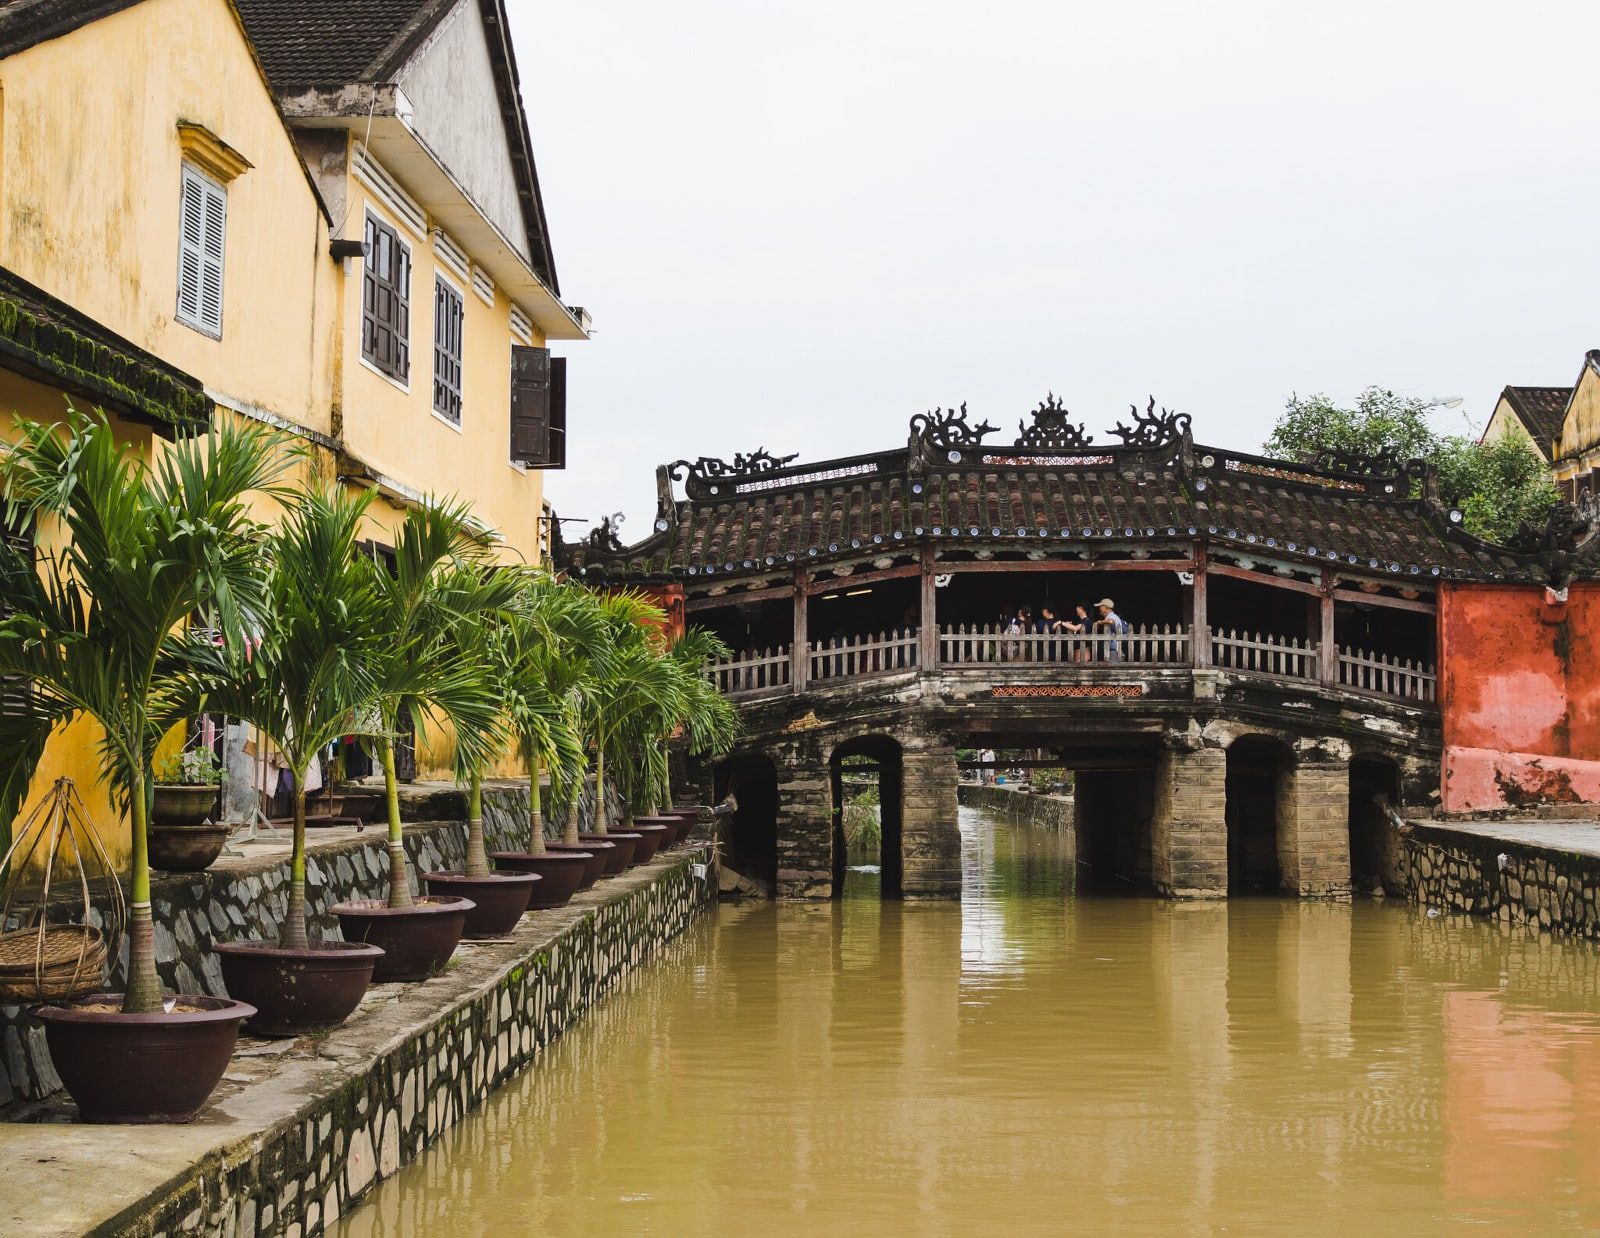 Image of the Japanese Covered Bridge during the day in Hoi An, Vietnam